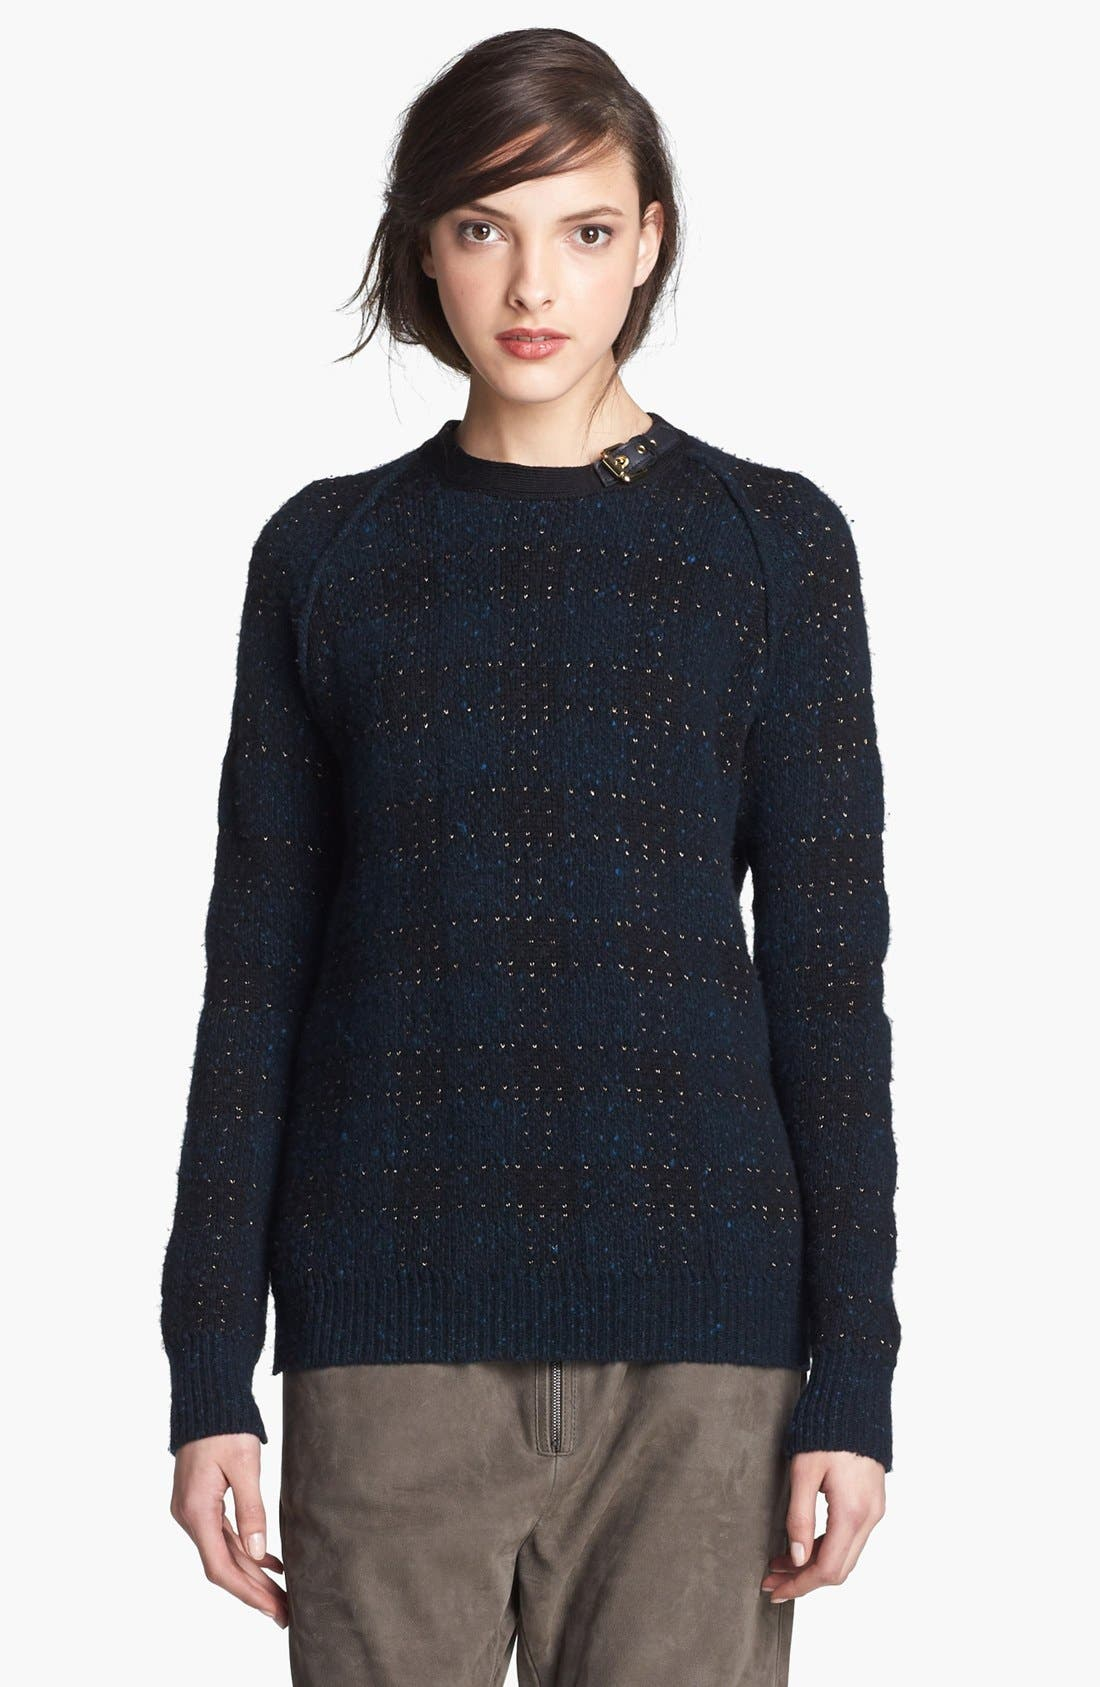 Main Image - 3.1 Phillip Lim Plaid Sweater